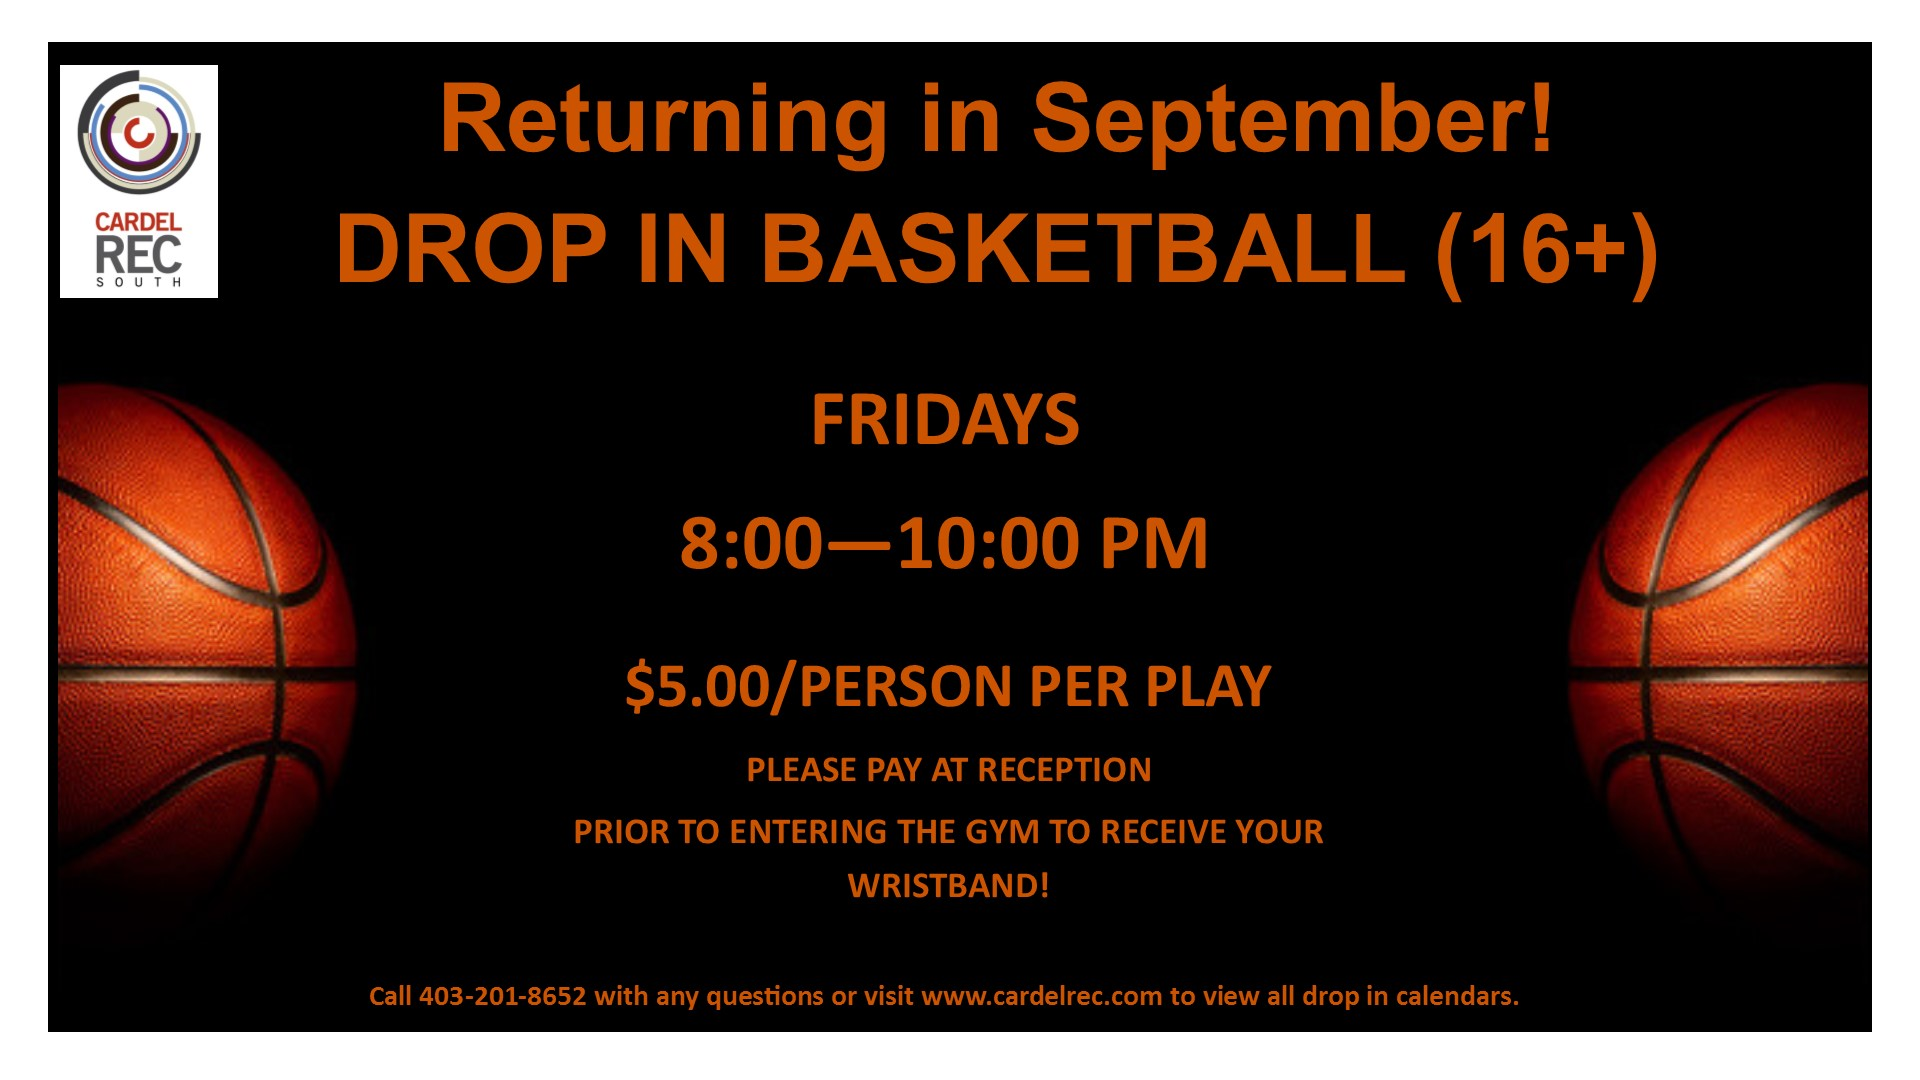 DROP IN BASKETBALL